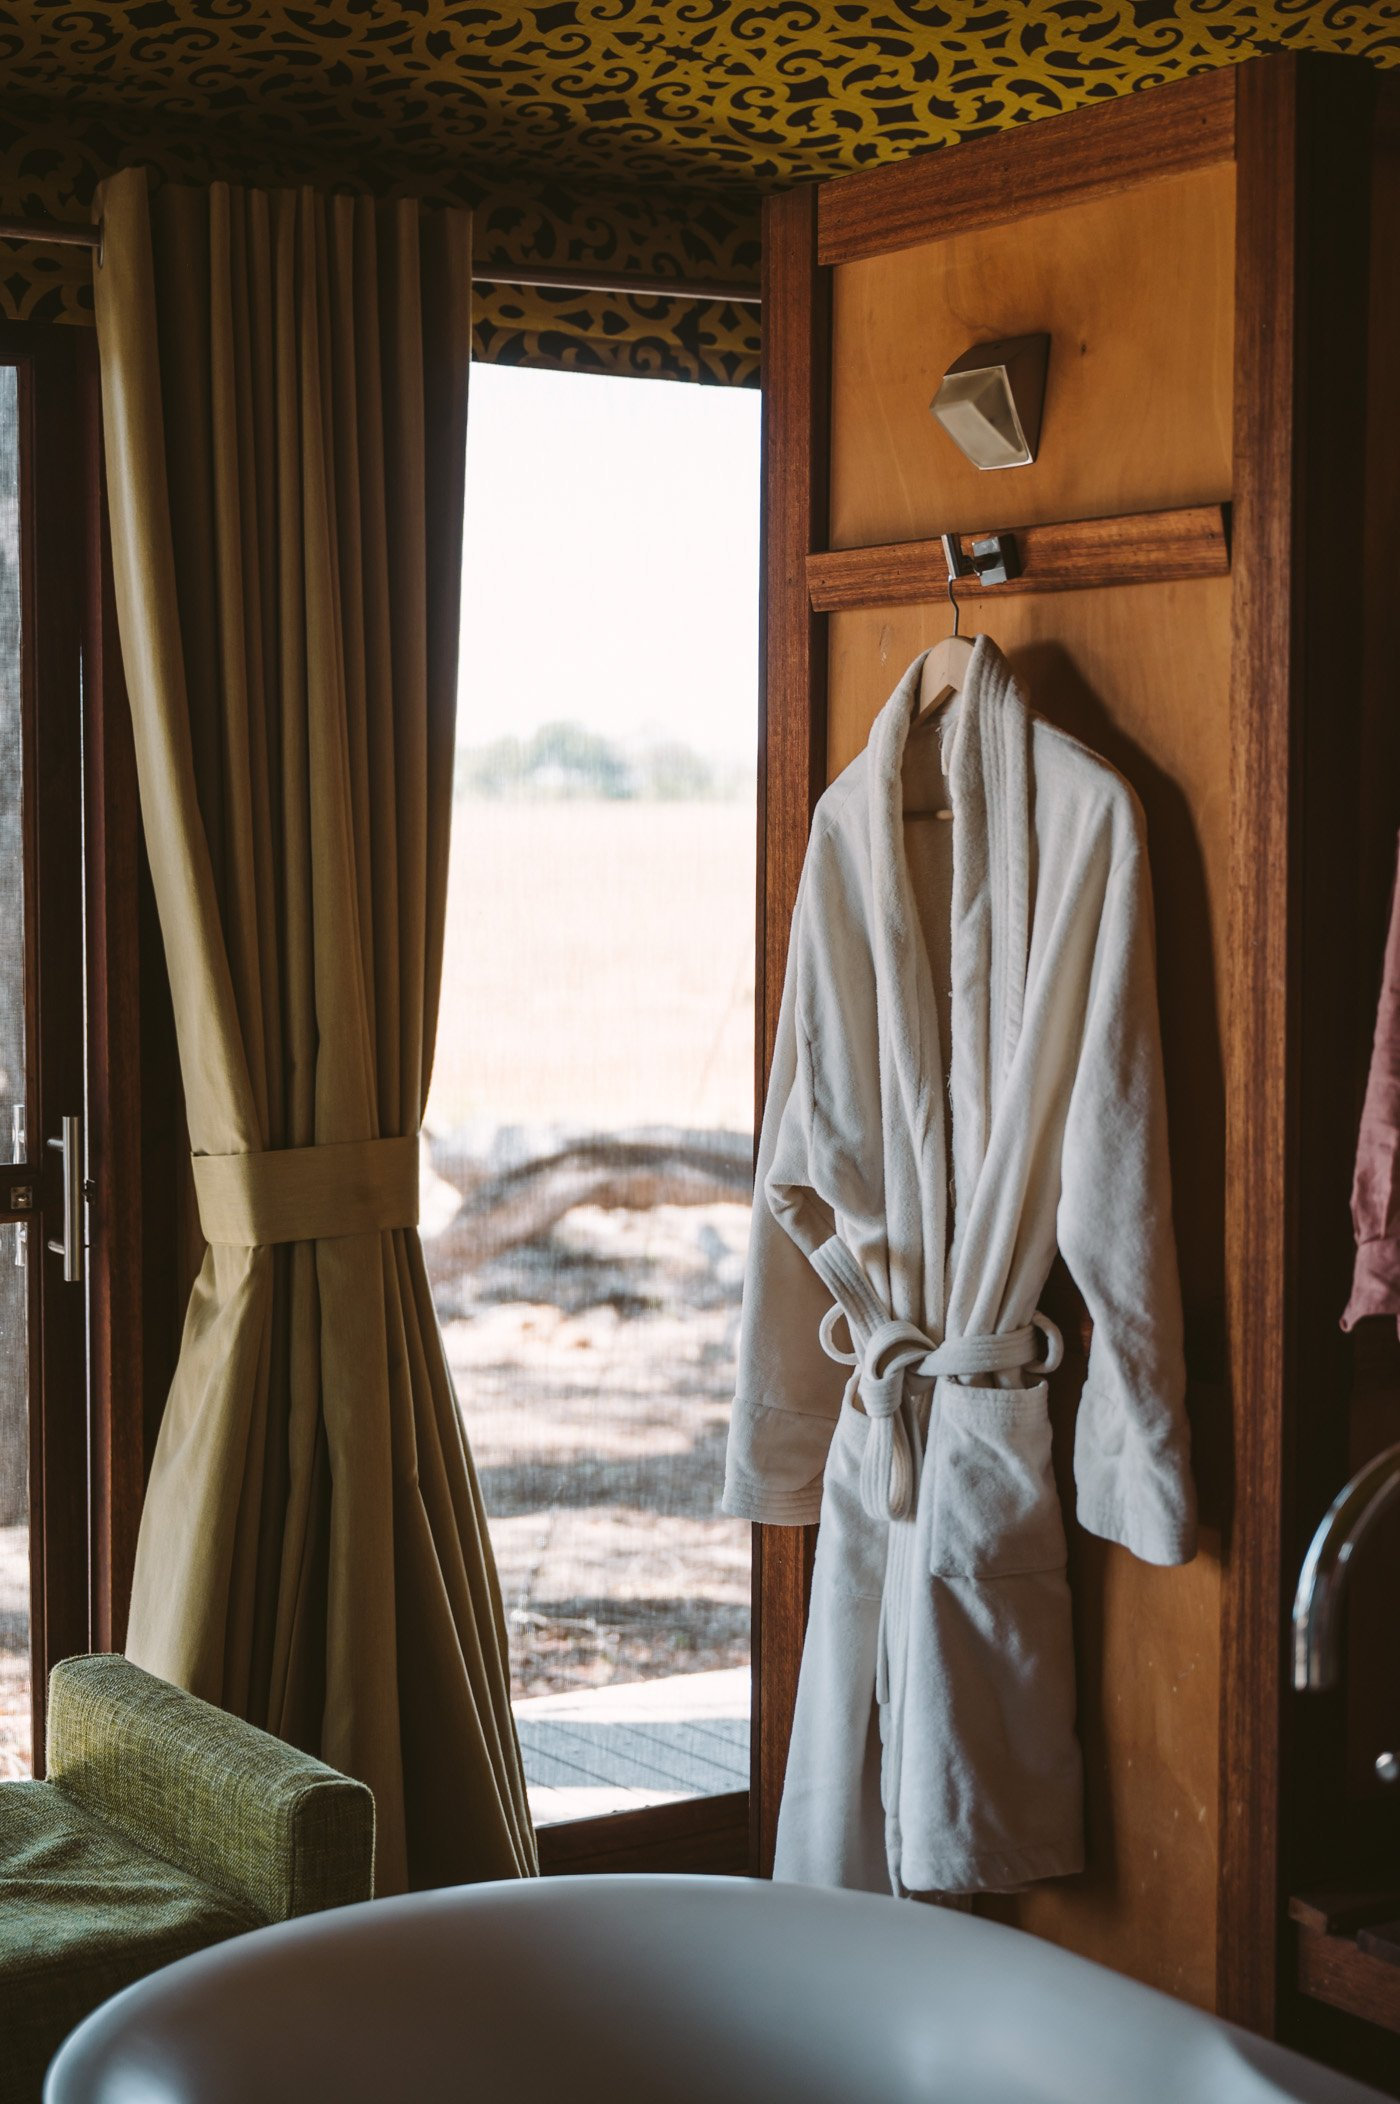 andBeyond Xaranna Okavango Delta Camp bathroom detail